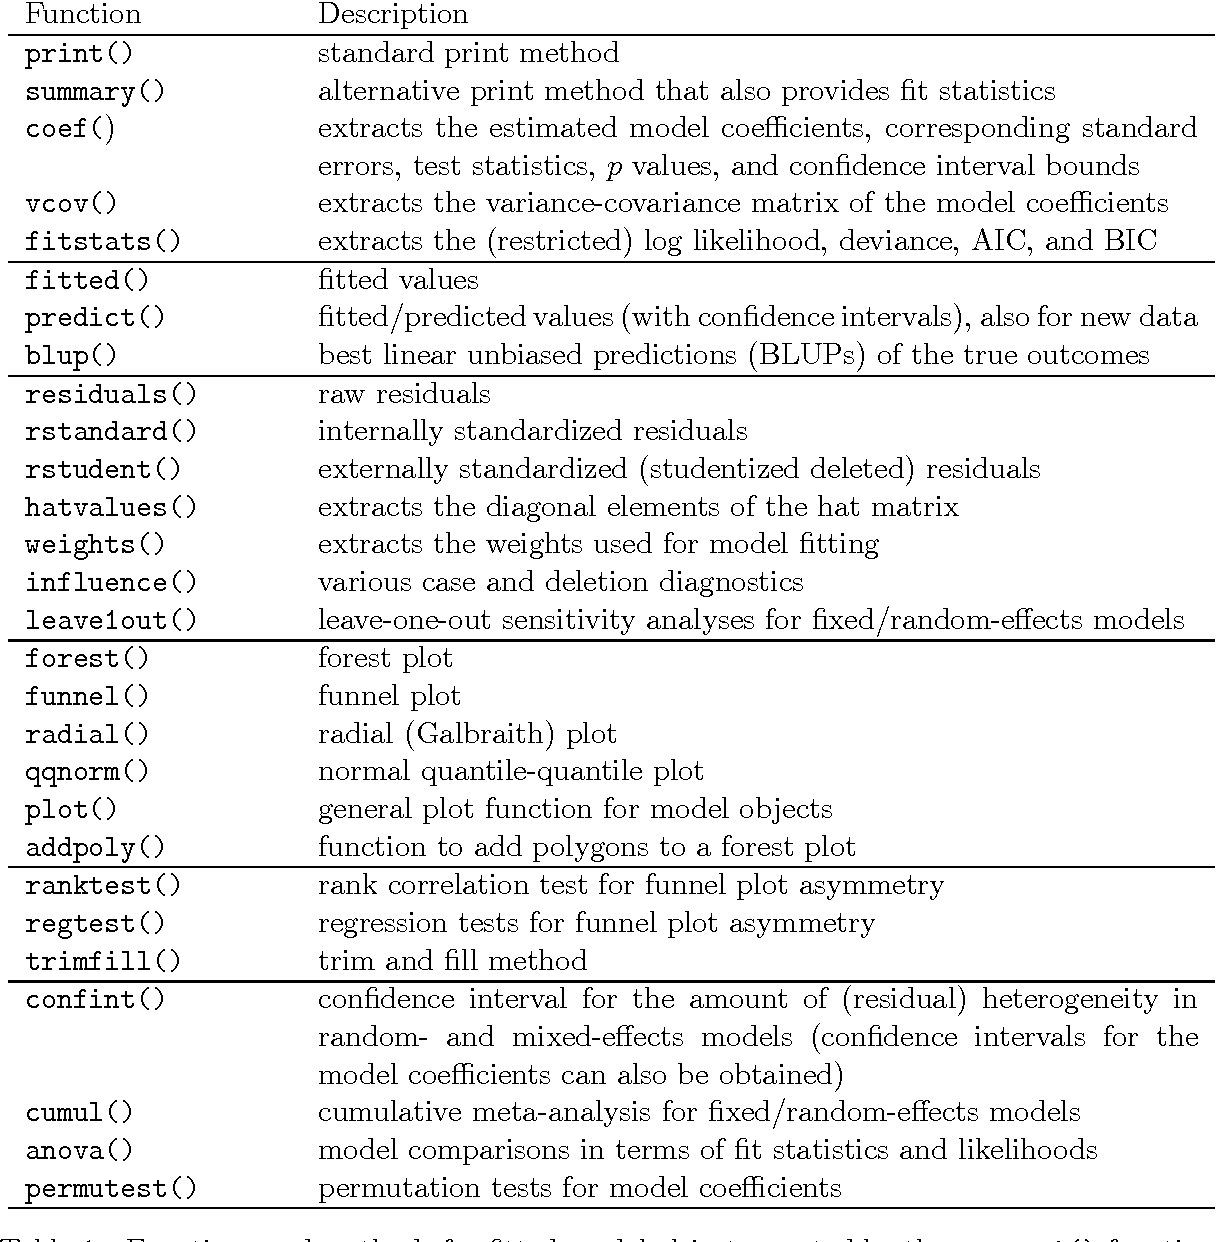 Table 1 from Conducting Meta-Analyses in R with the metafor